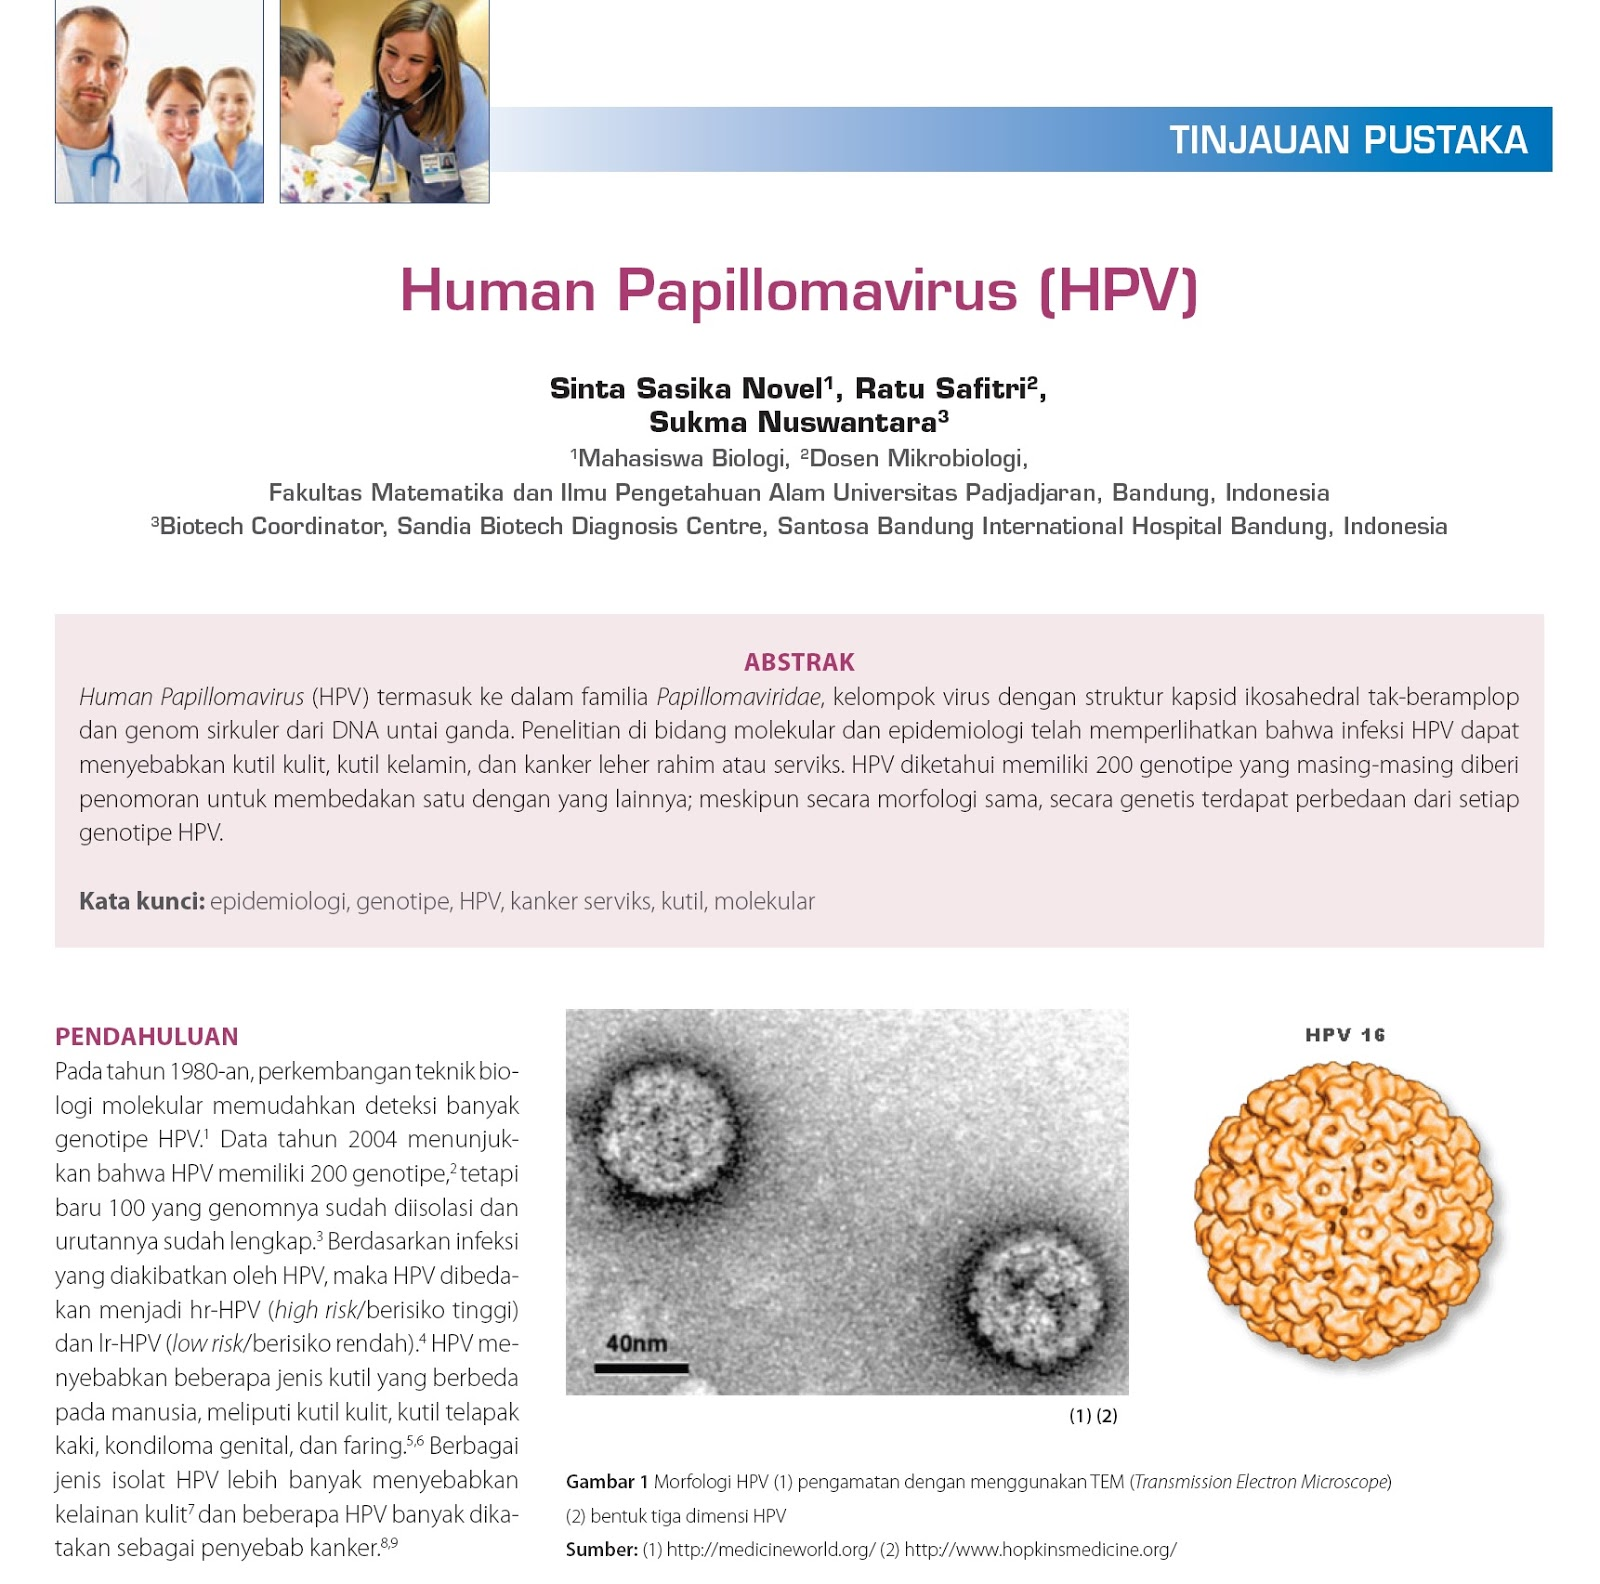 hpv dna high risk adalah